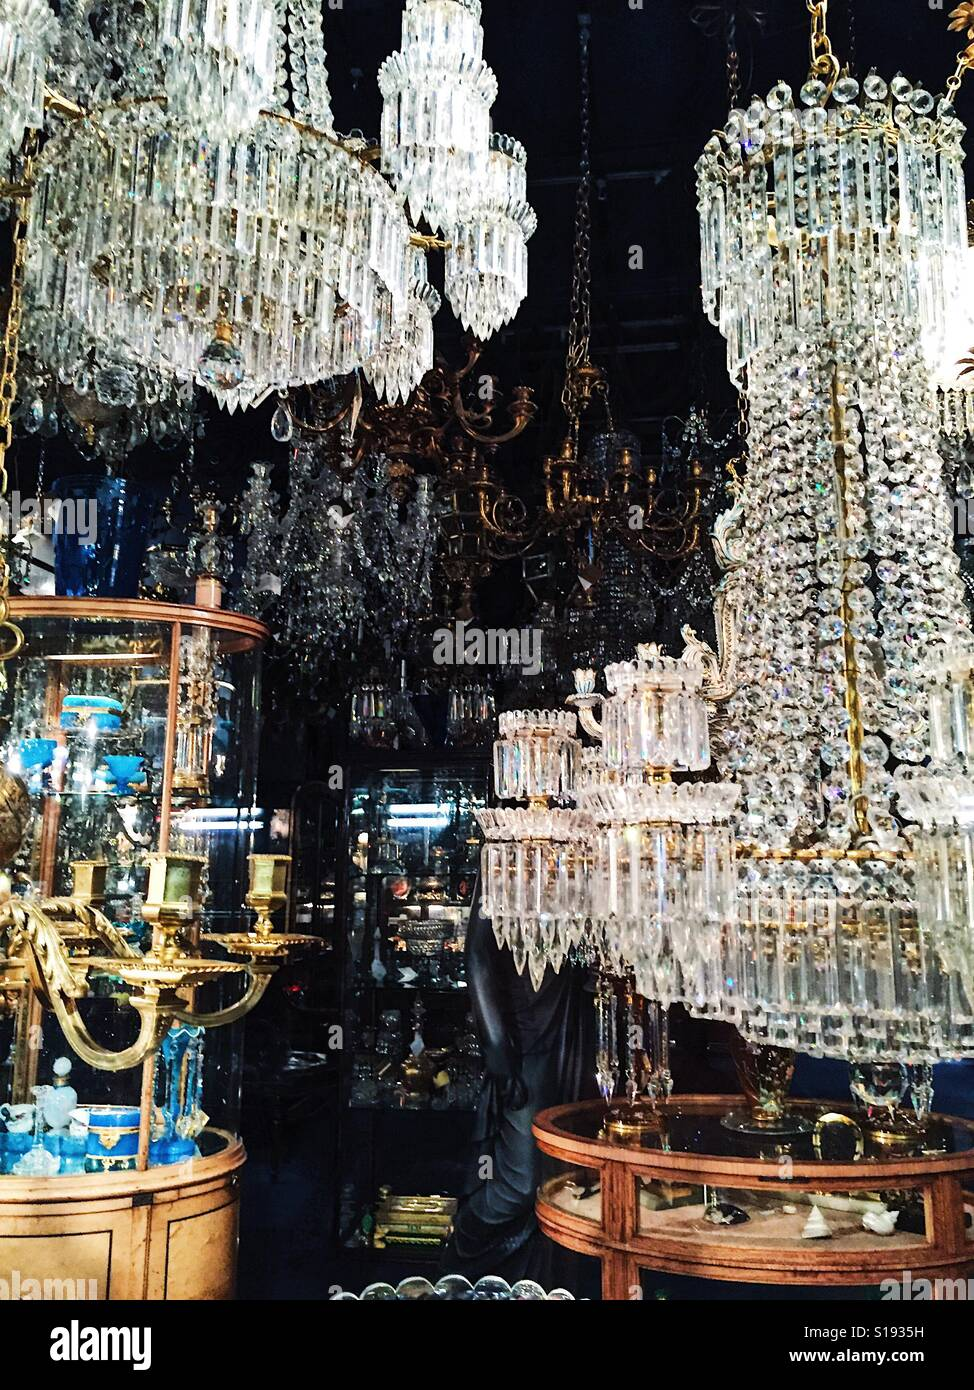 Chandeliers in the window of antiques shop in notting hill gate chandeliers in the window of antiques shop in notting hill gate london uk aloadofball Choice Image